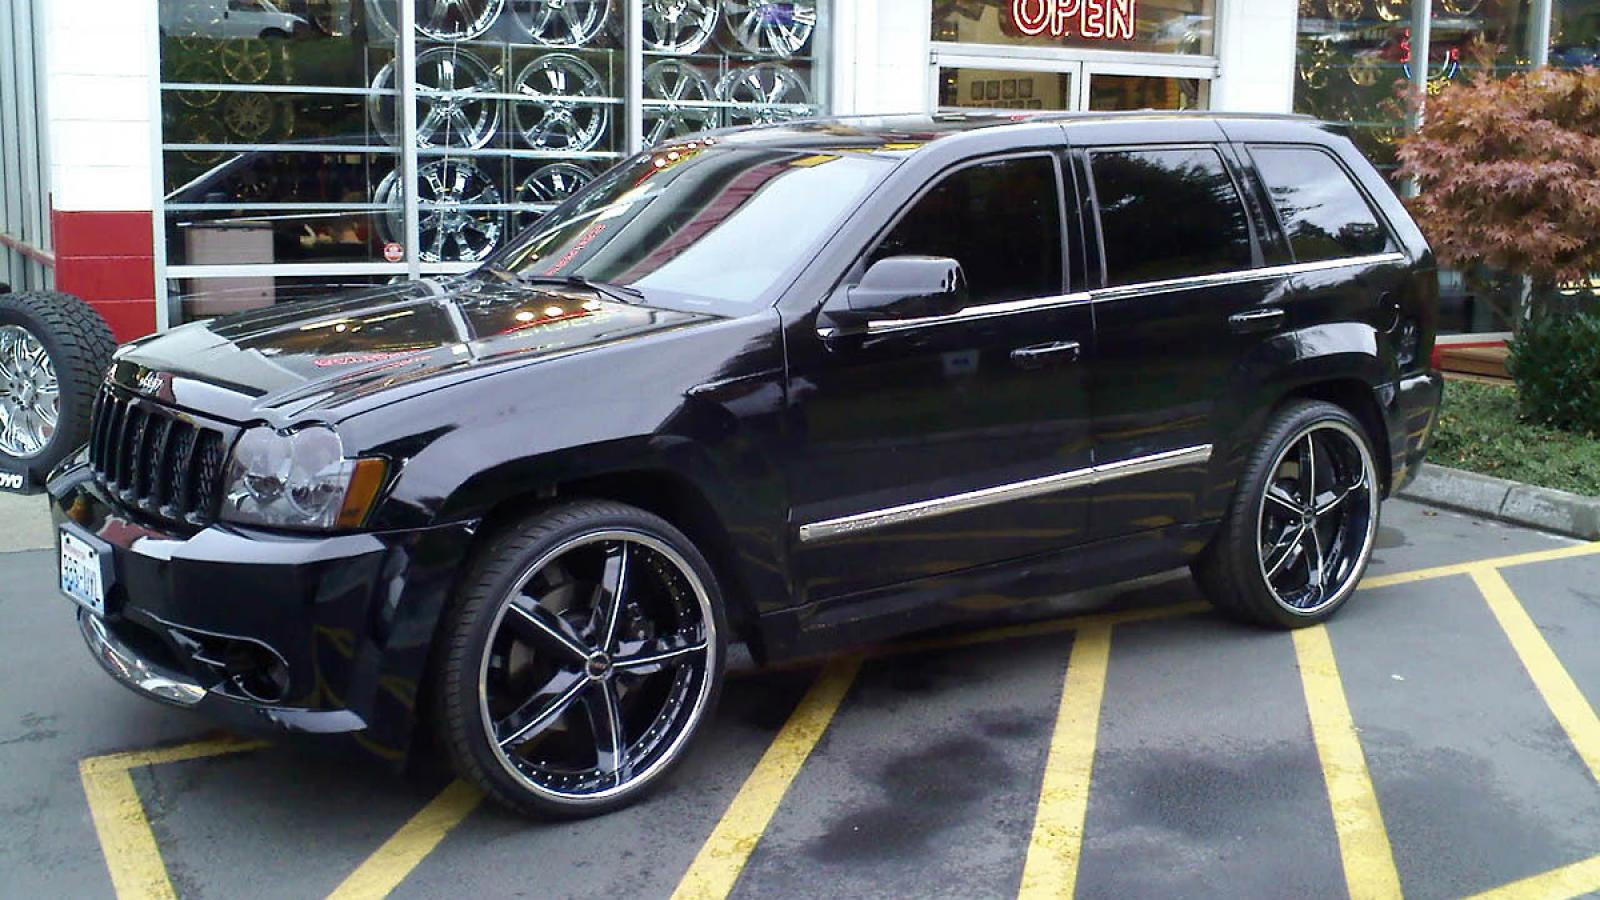 2008 jeep grand cherokee information and photos zombiedrive. Black Bedroom Furniture Sets. Home Design Ideas